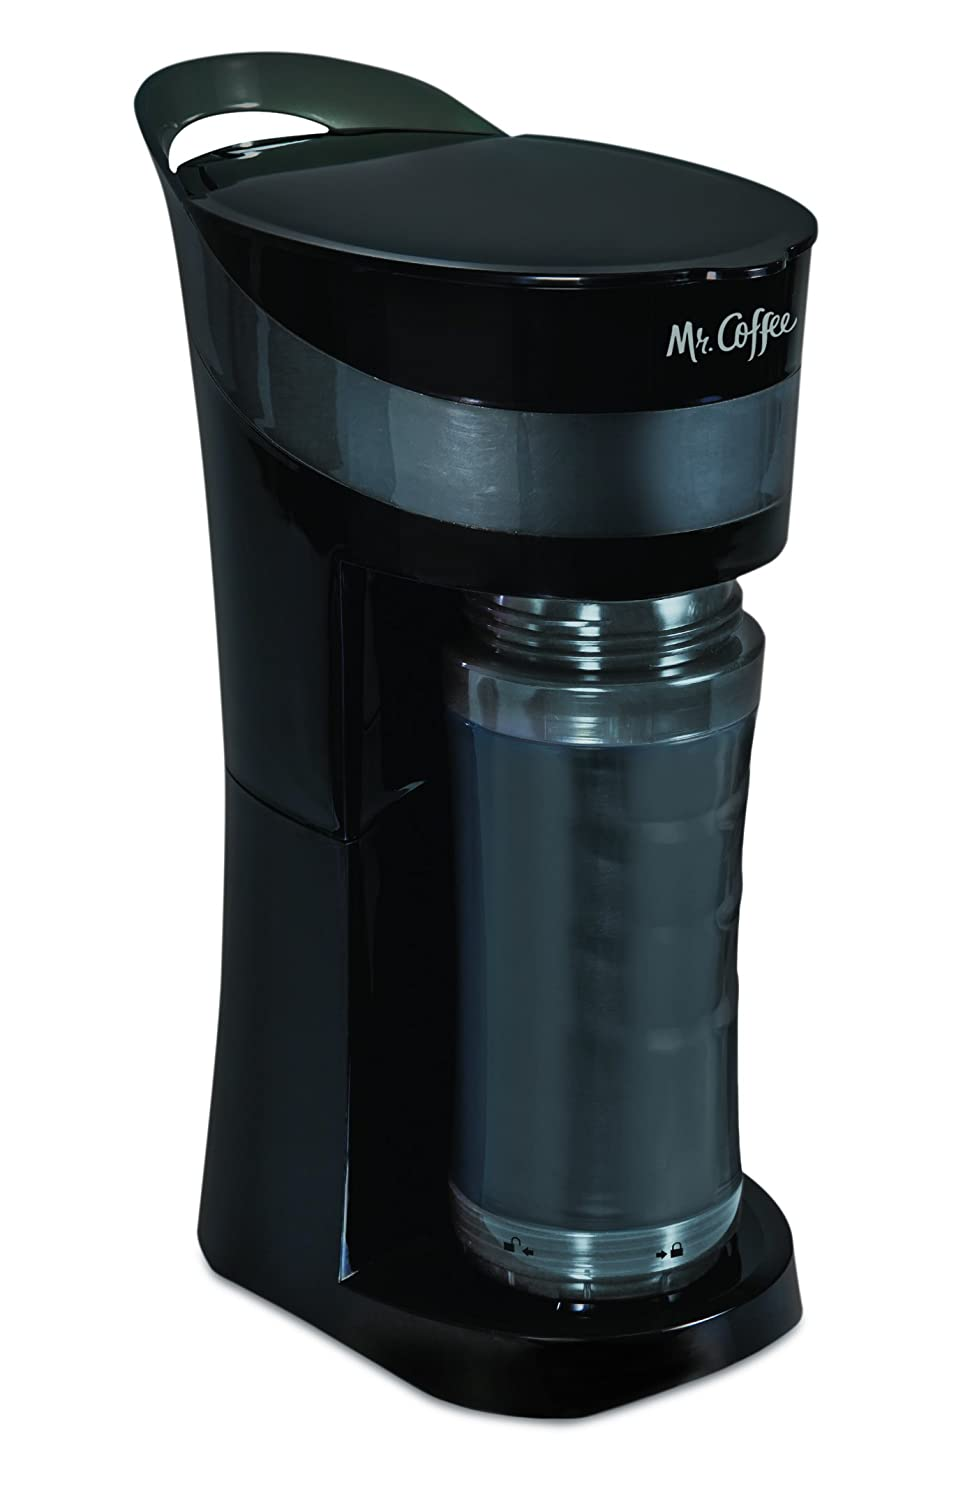 Coffee Maker Mug : Mr. Coffee Pour! Brew! Go! 16-Ounce Personal Coffee Makers with TO-GO Mugs